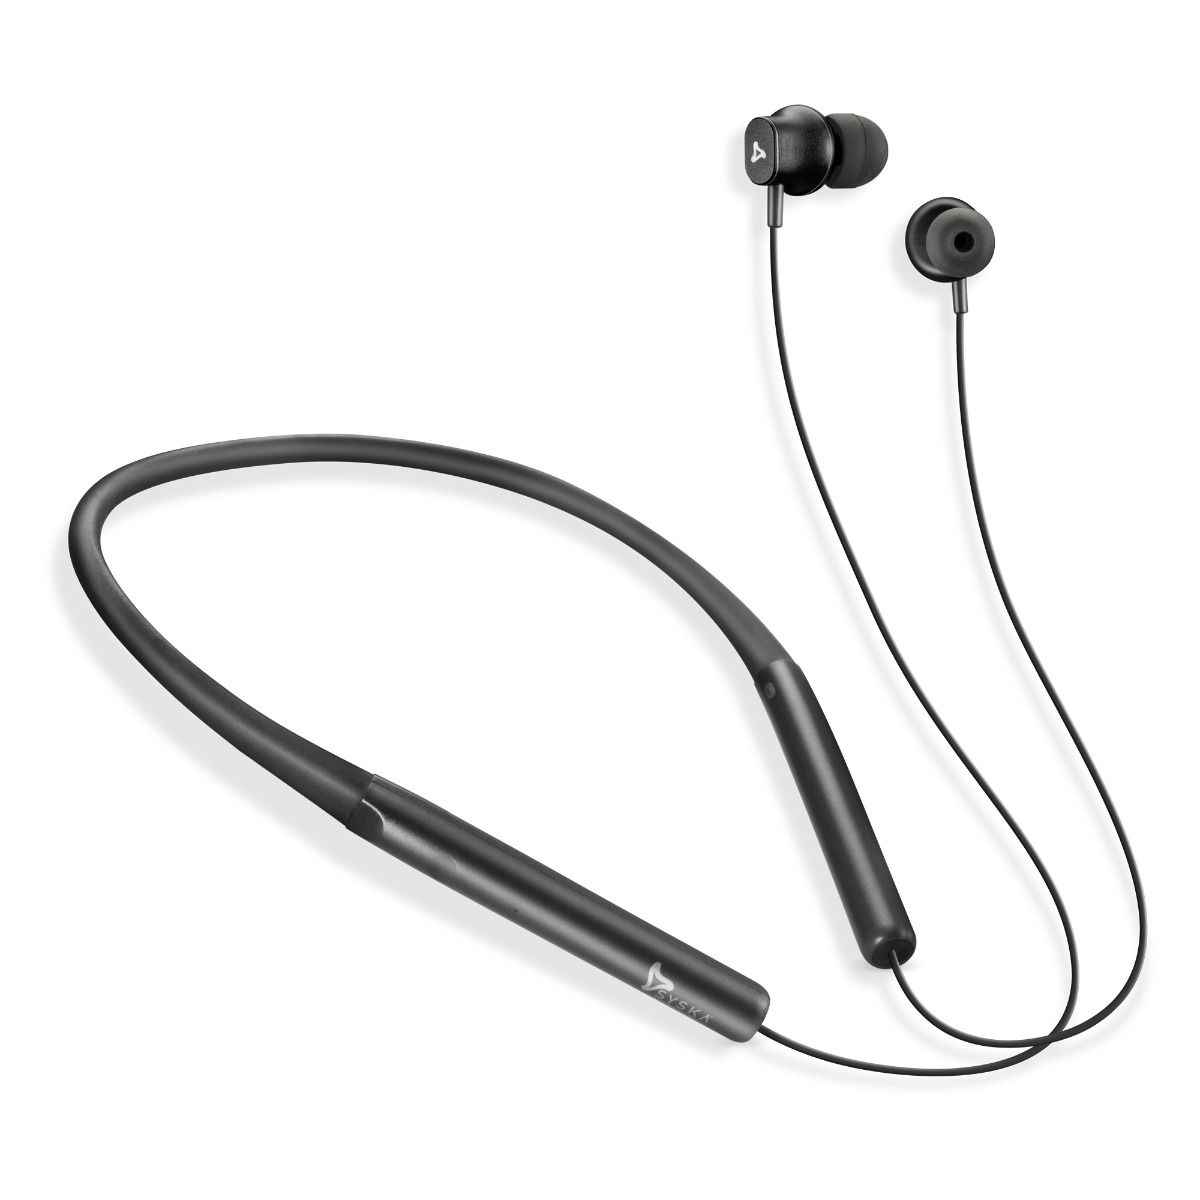 Reverb C2 Wireless Earphones